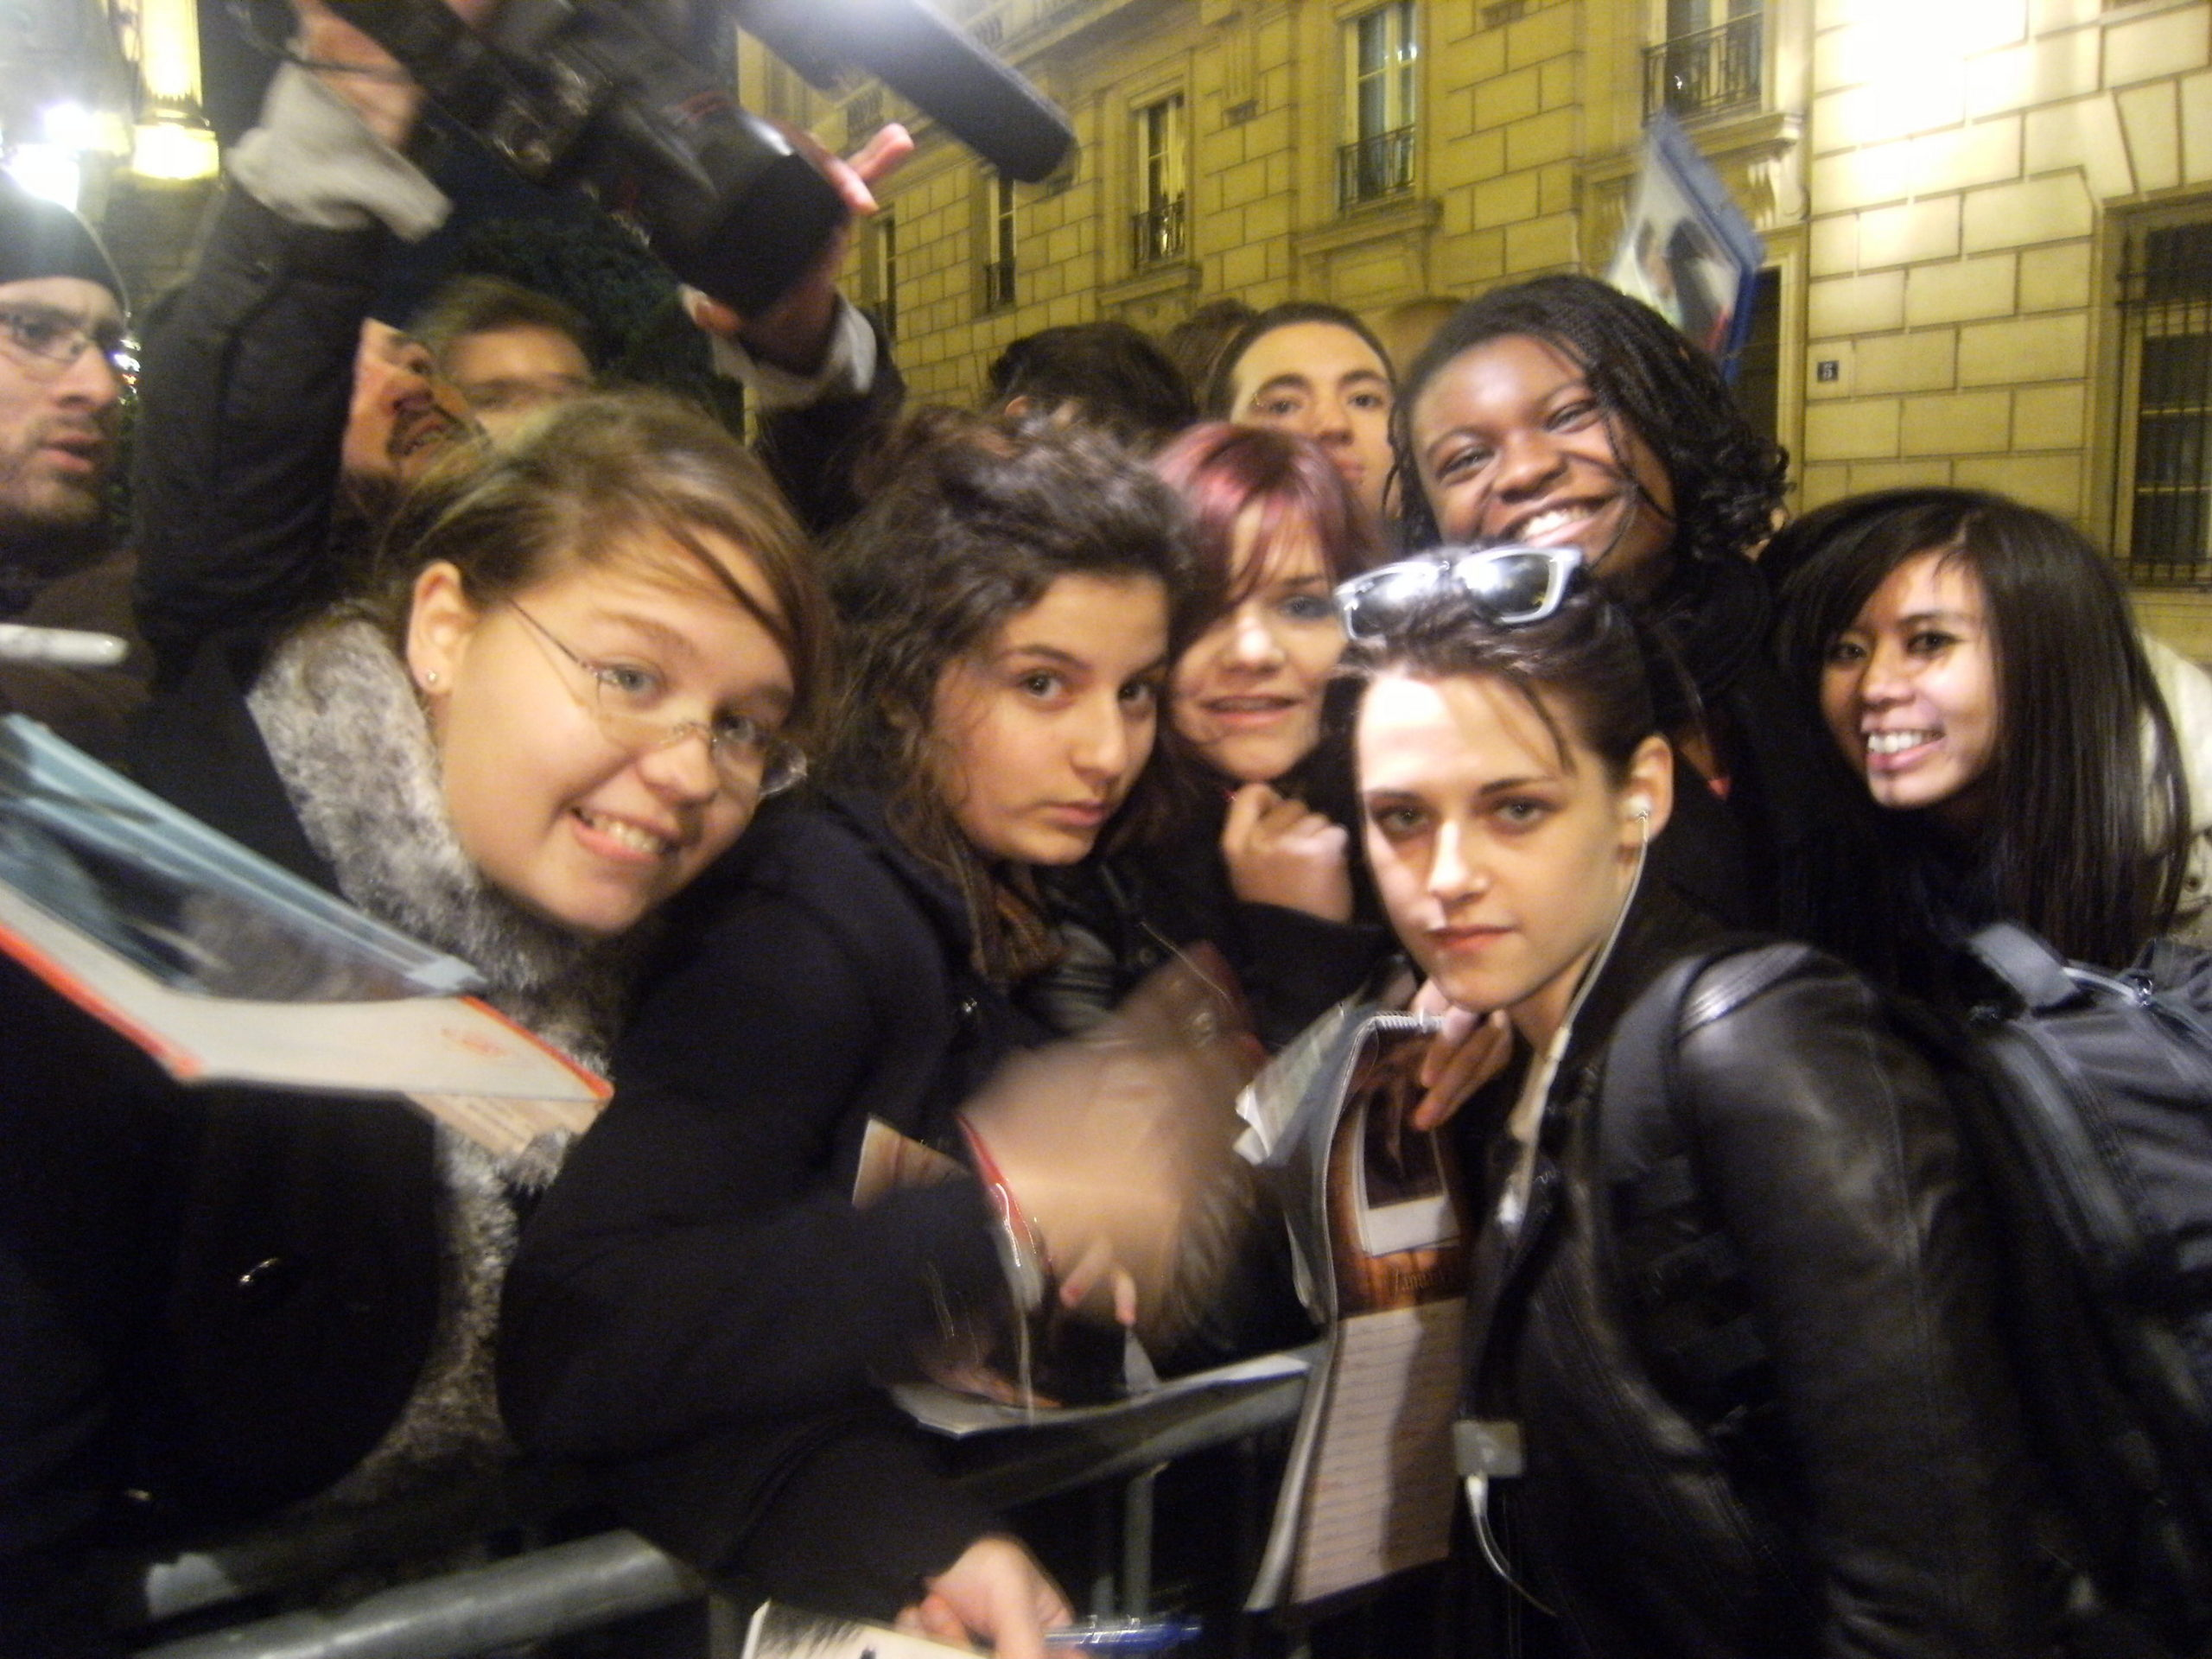 Kristen & fans - First pic from Paris